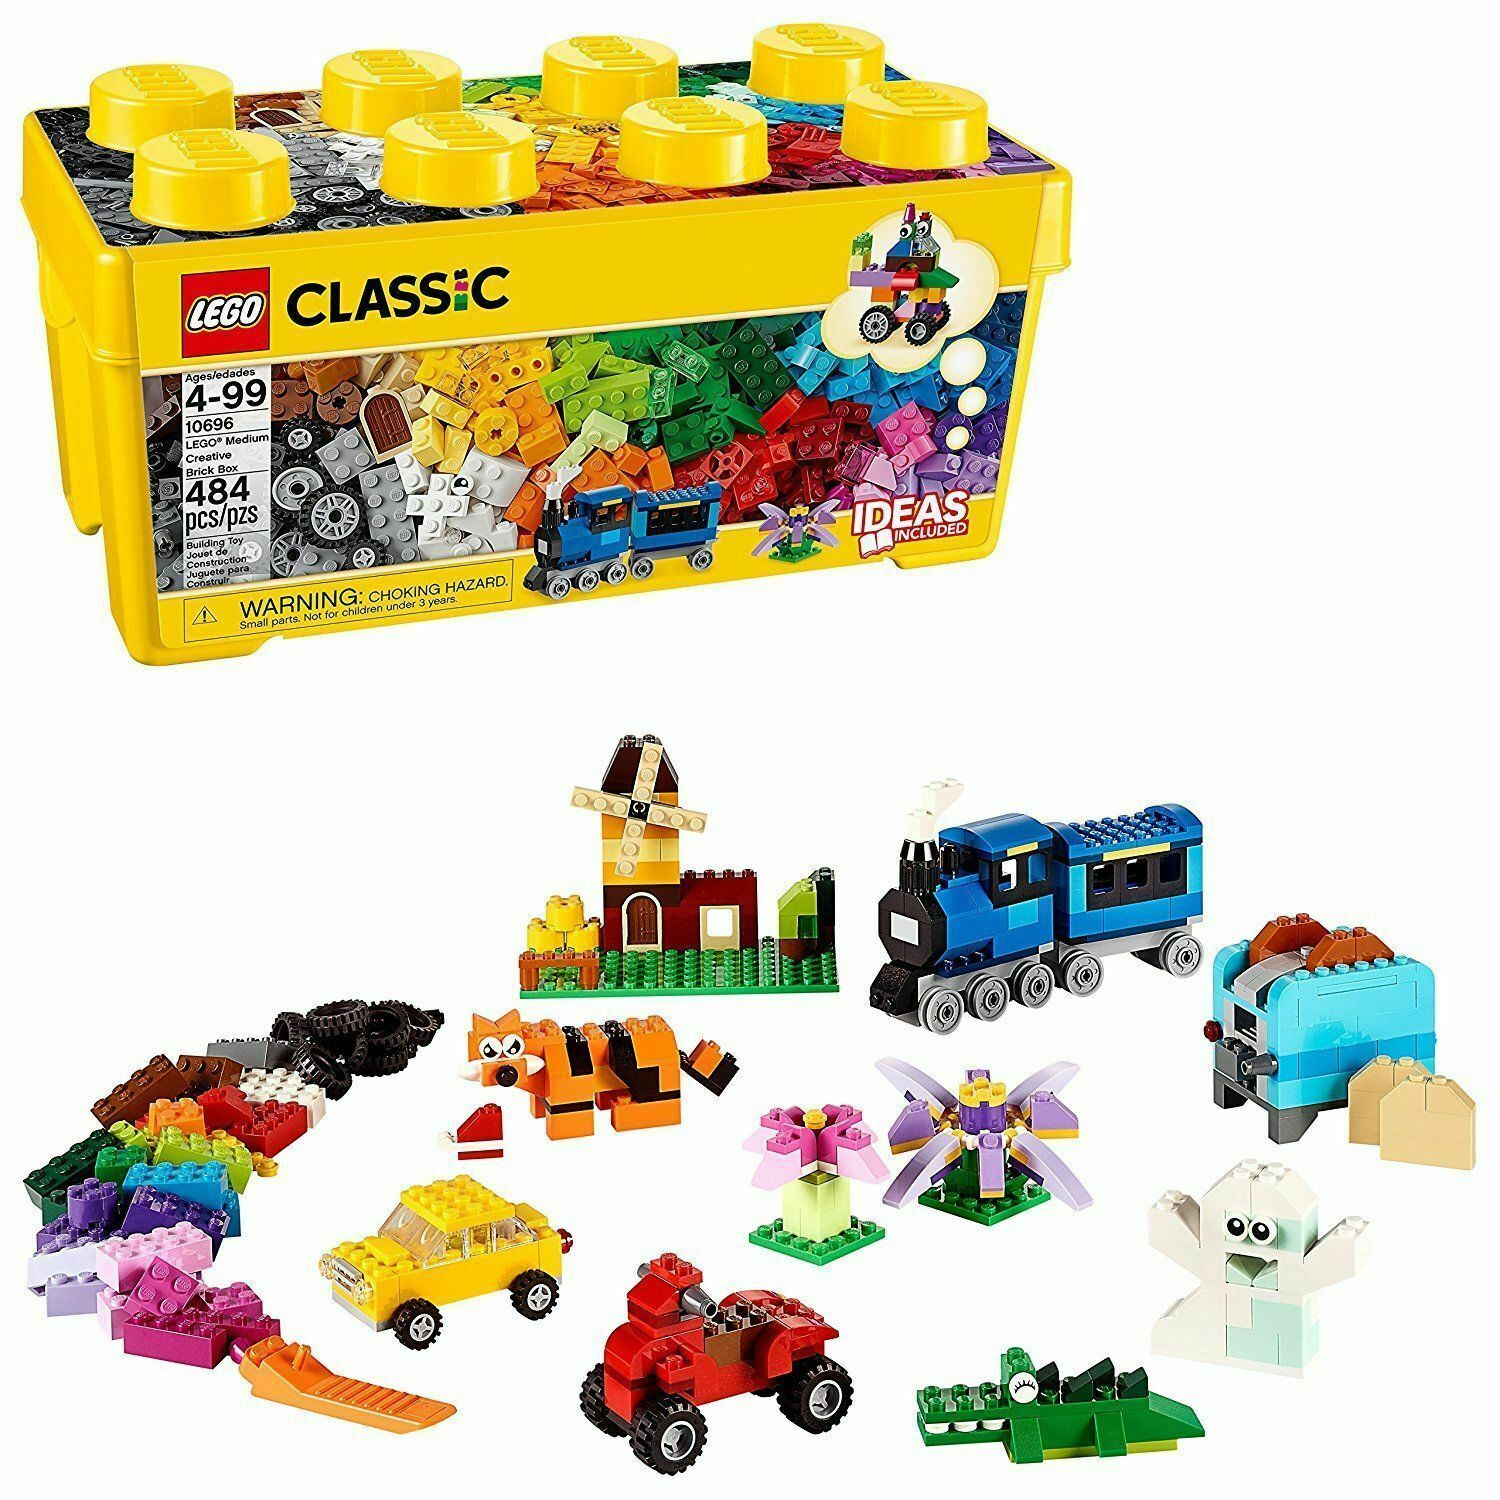 Educational Toy Large Kids Toy LEGO Classic Medium Creative